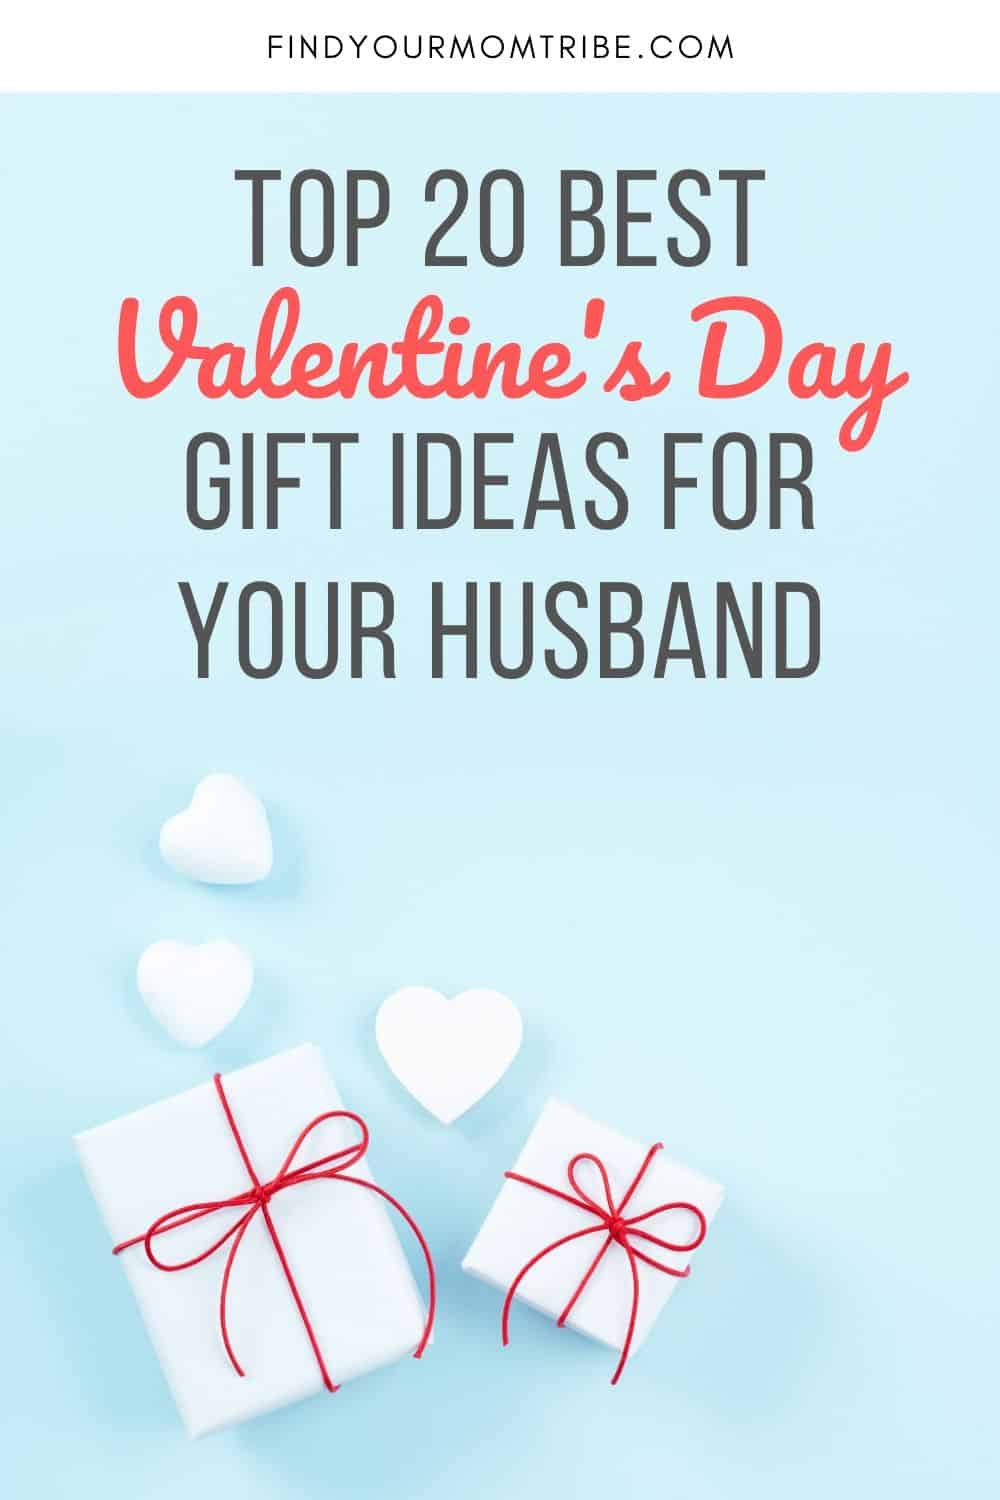 Pinterest Top 20 Best Valentine's Day Gift Ideas For Your Husband